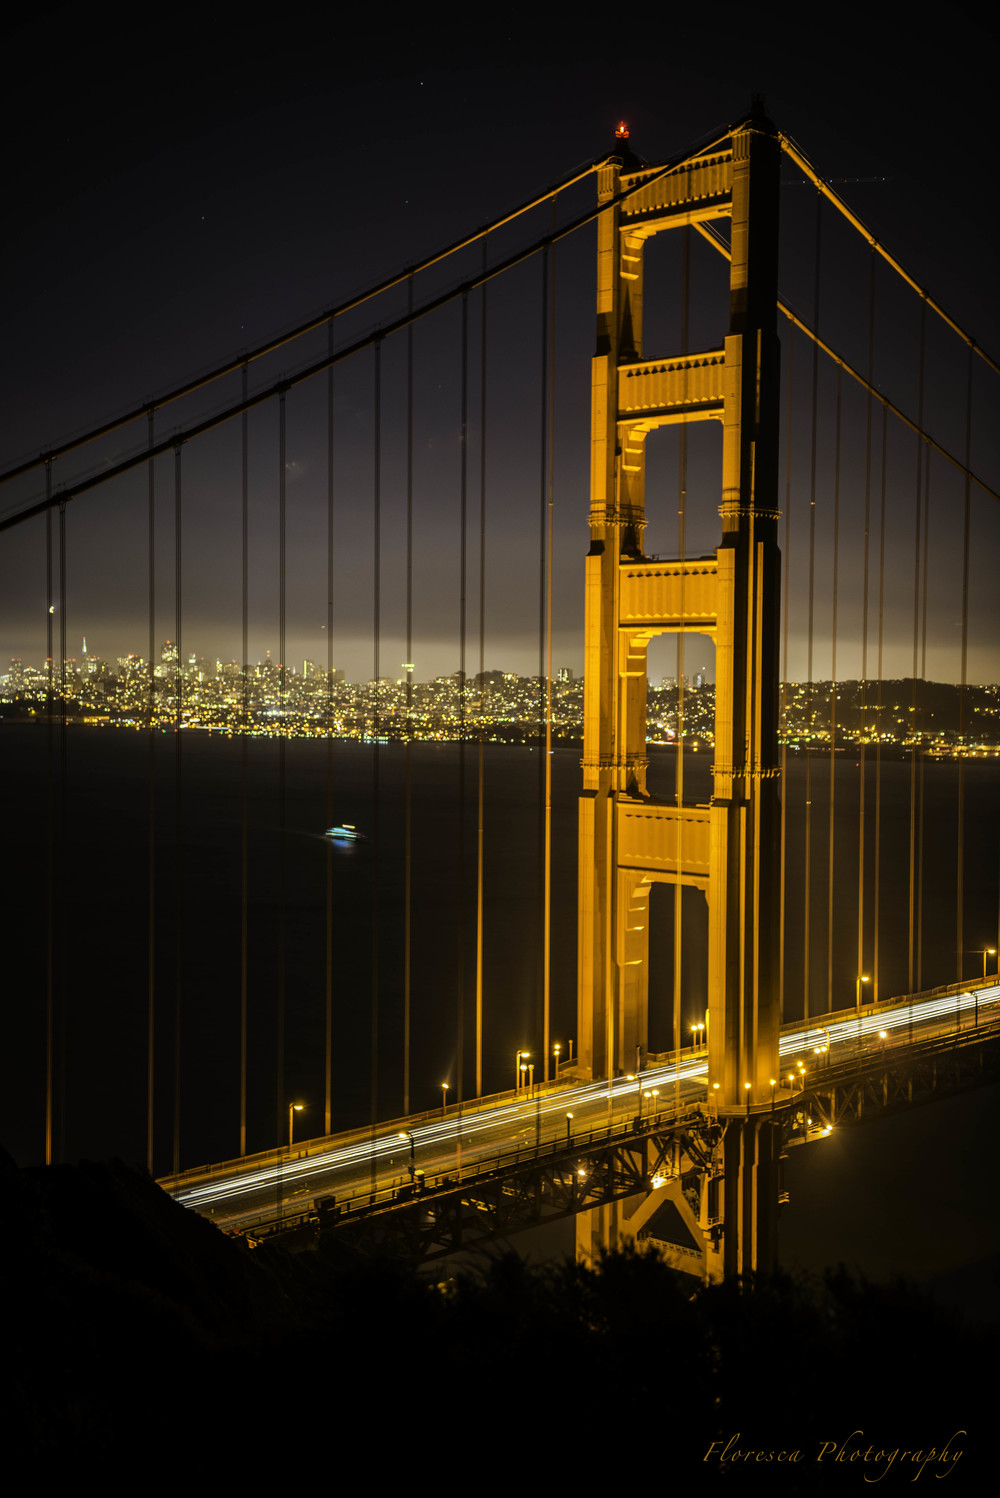 GoldenGateTowerAtNight.jpg